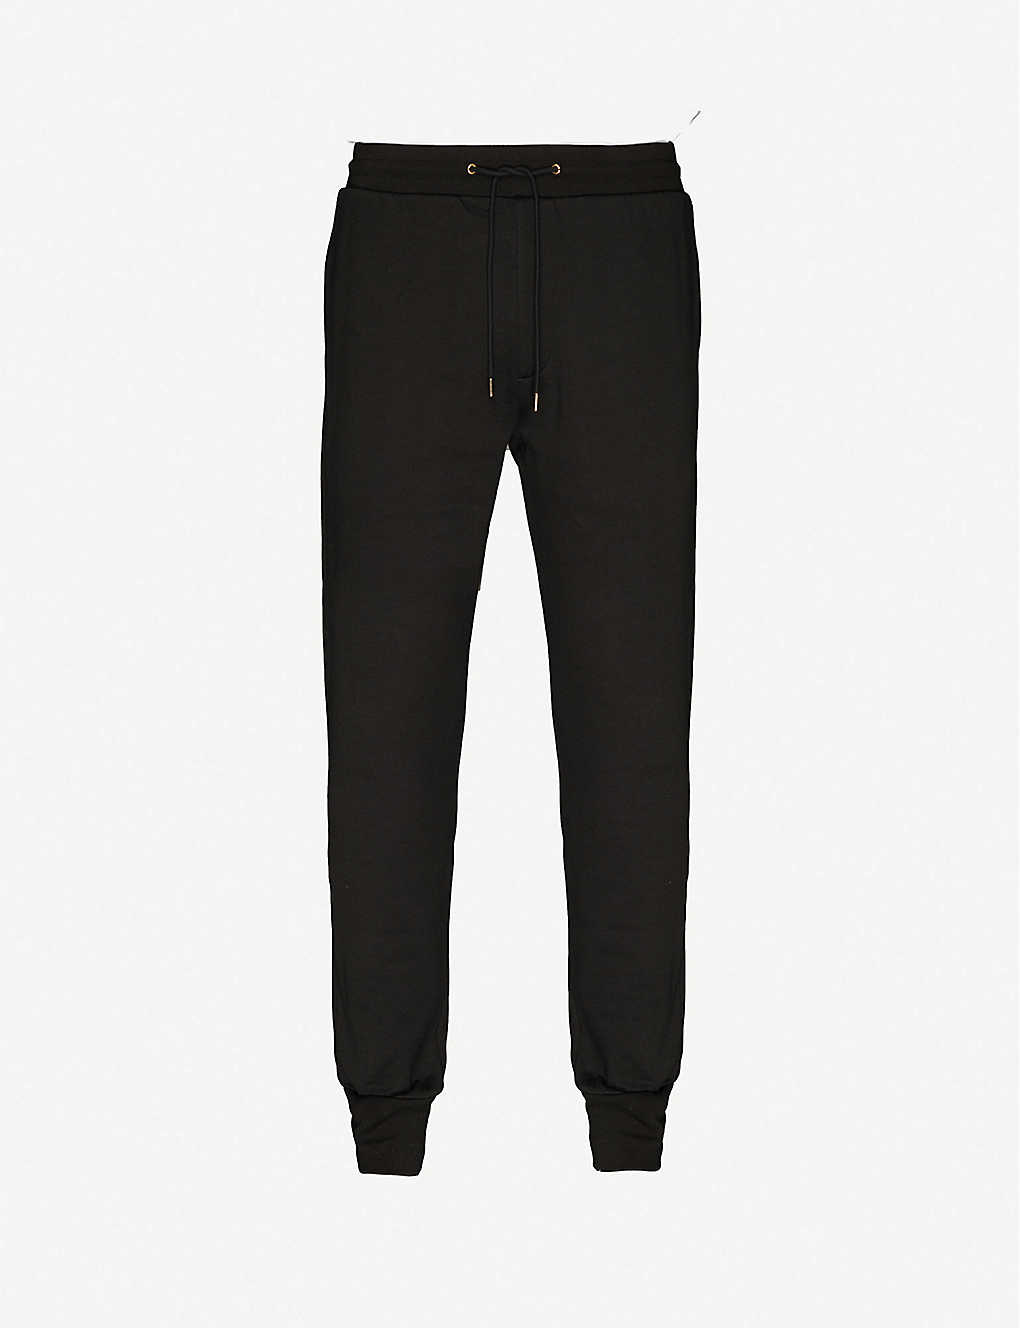 PAUL SMITH: Graphic-appliqué tapered cotton-jersey jogging bottoms